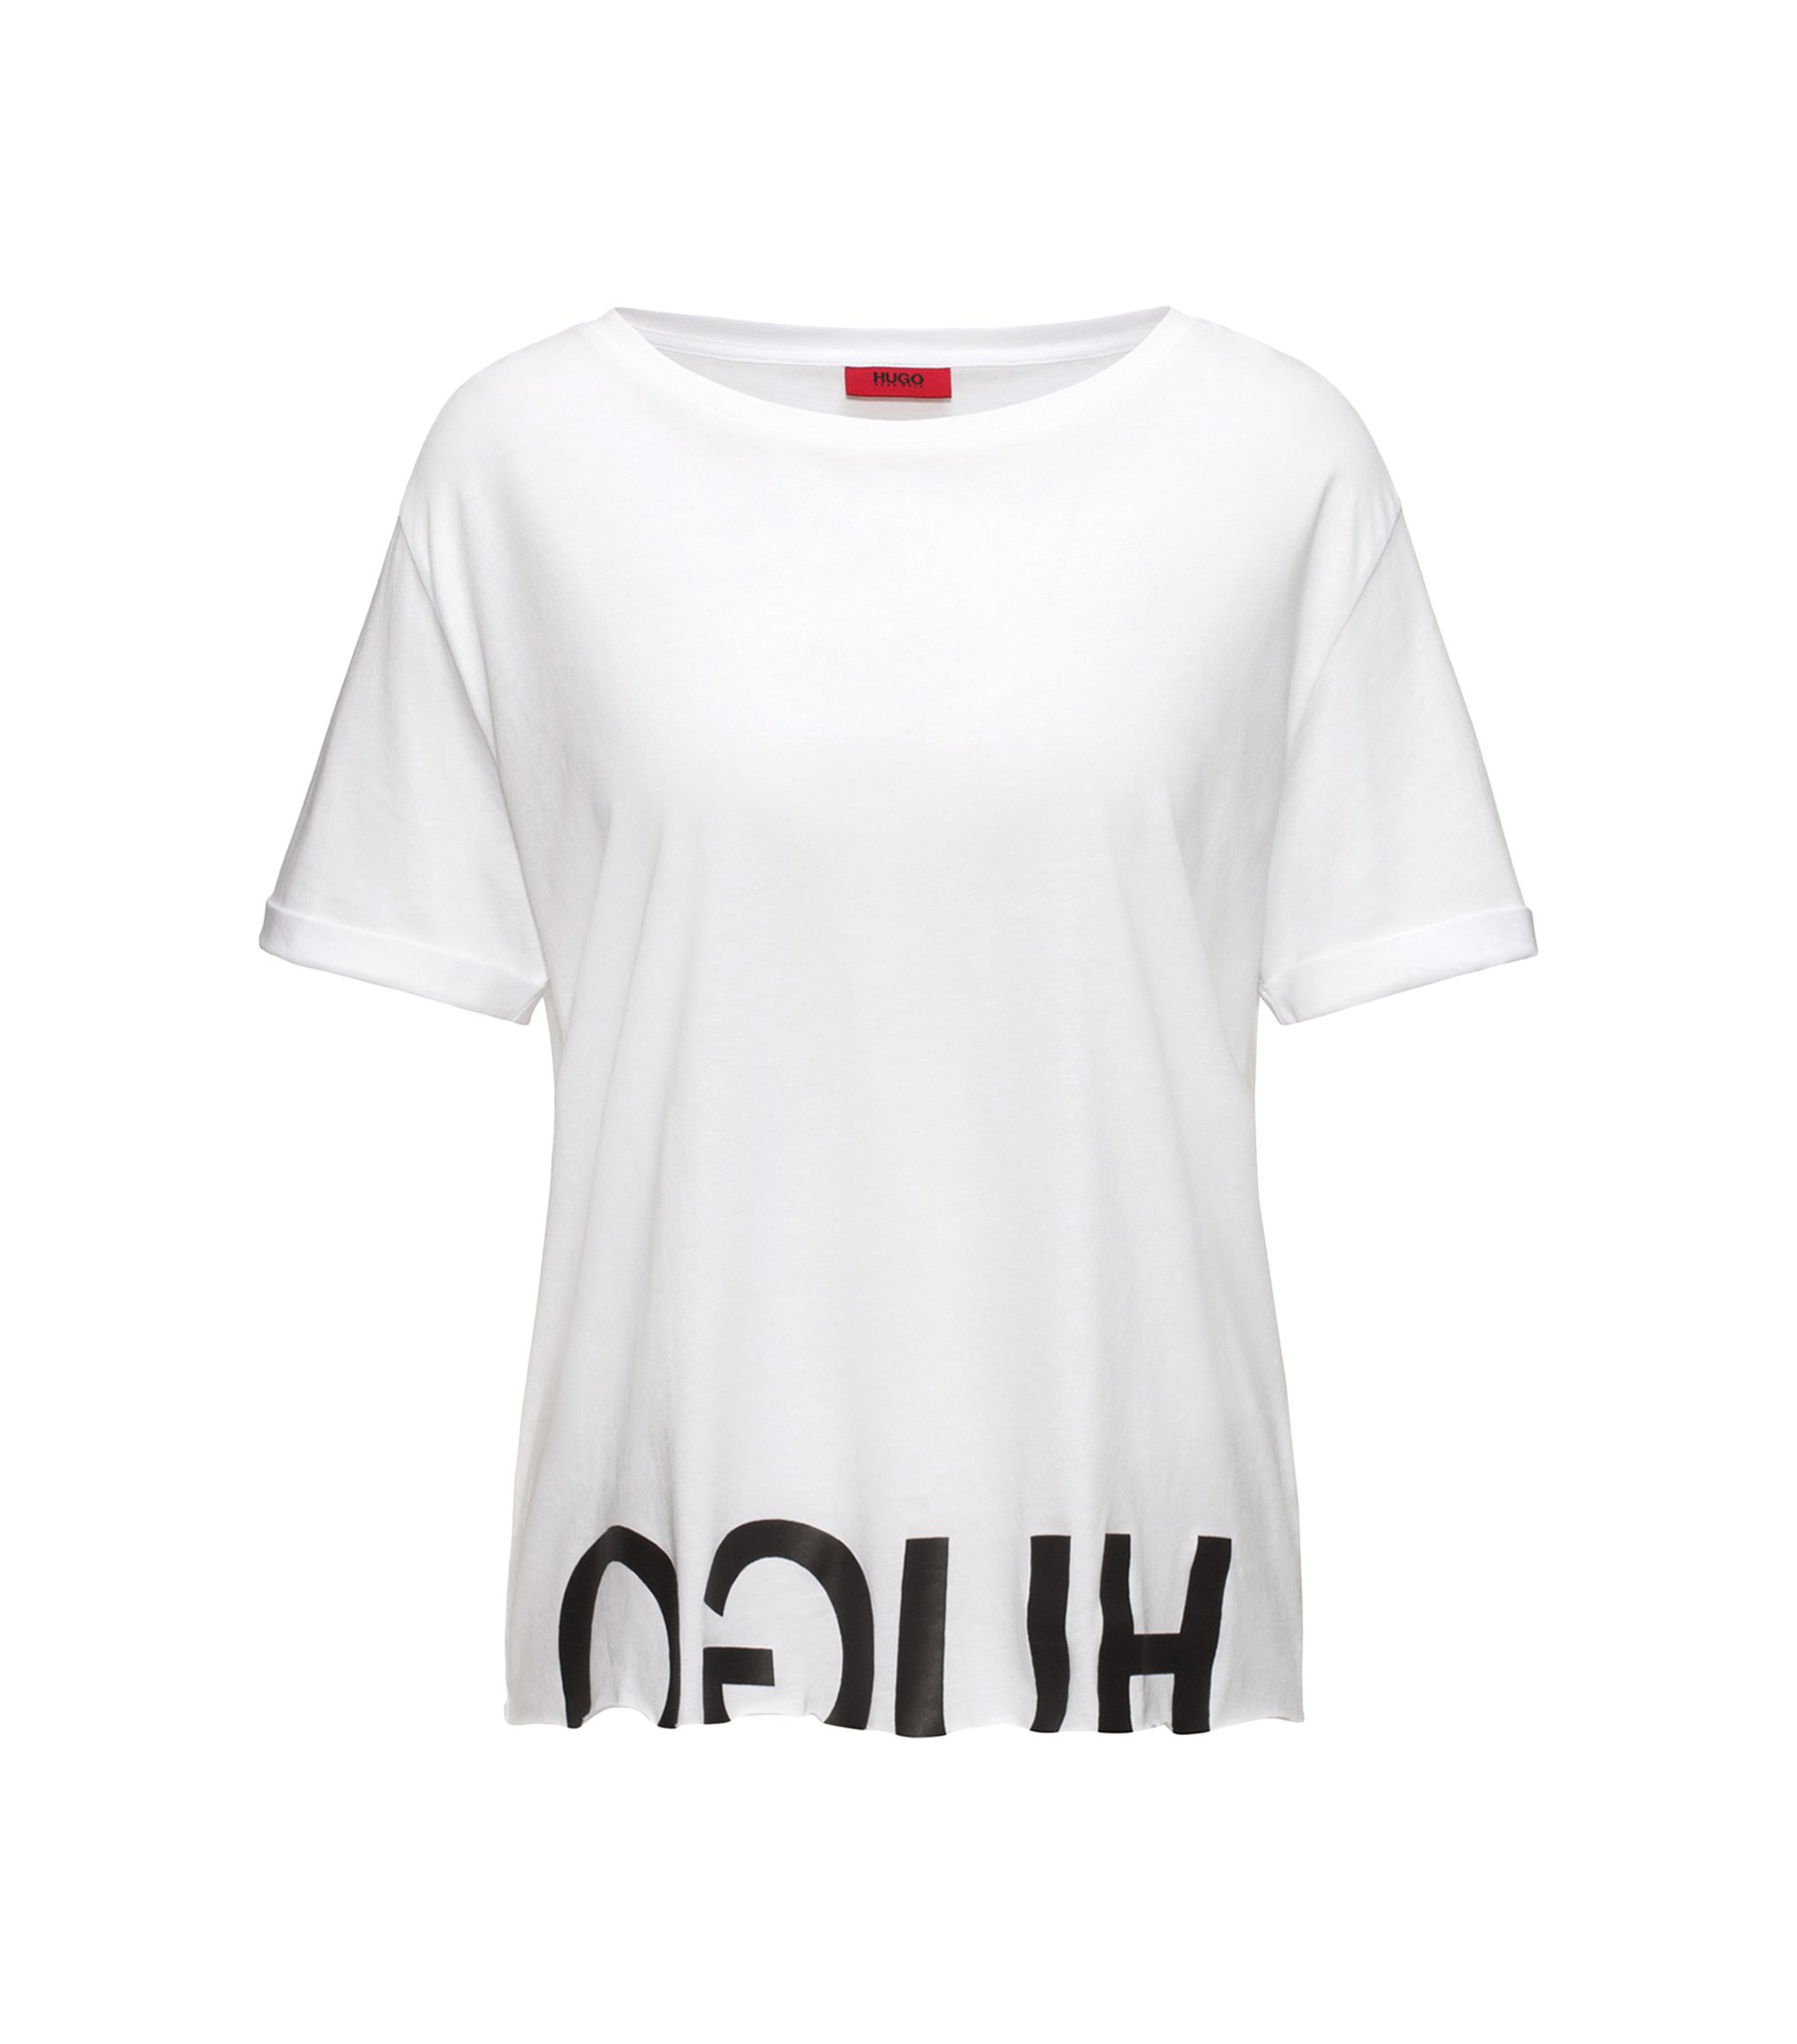 Camiseta relaxed fit de algodón con logo invertido, Blanco